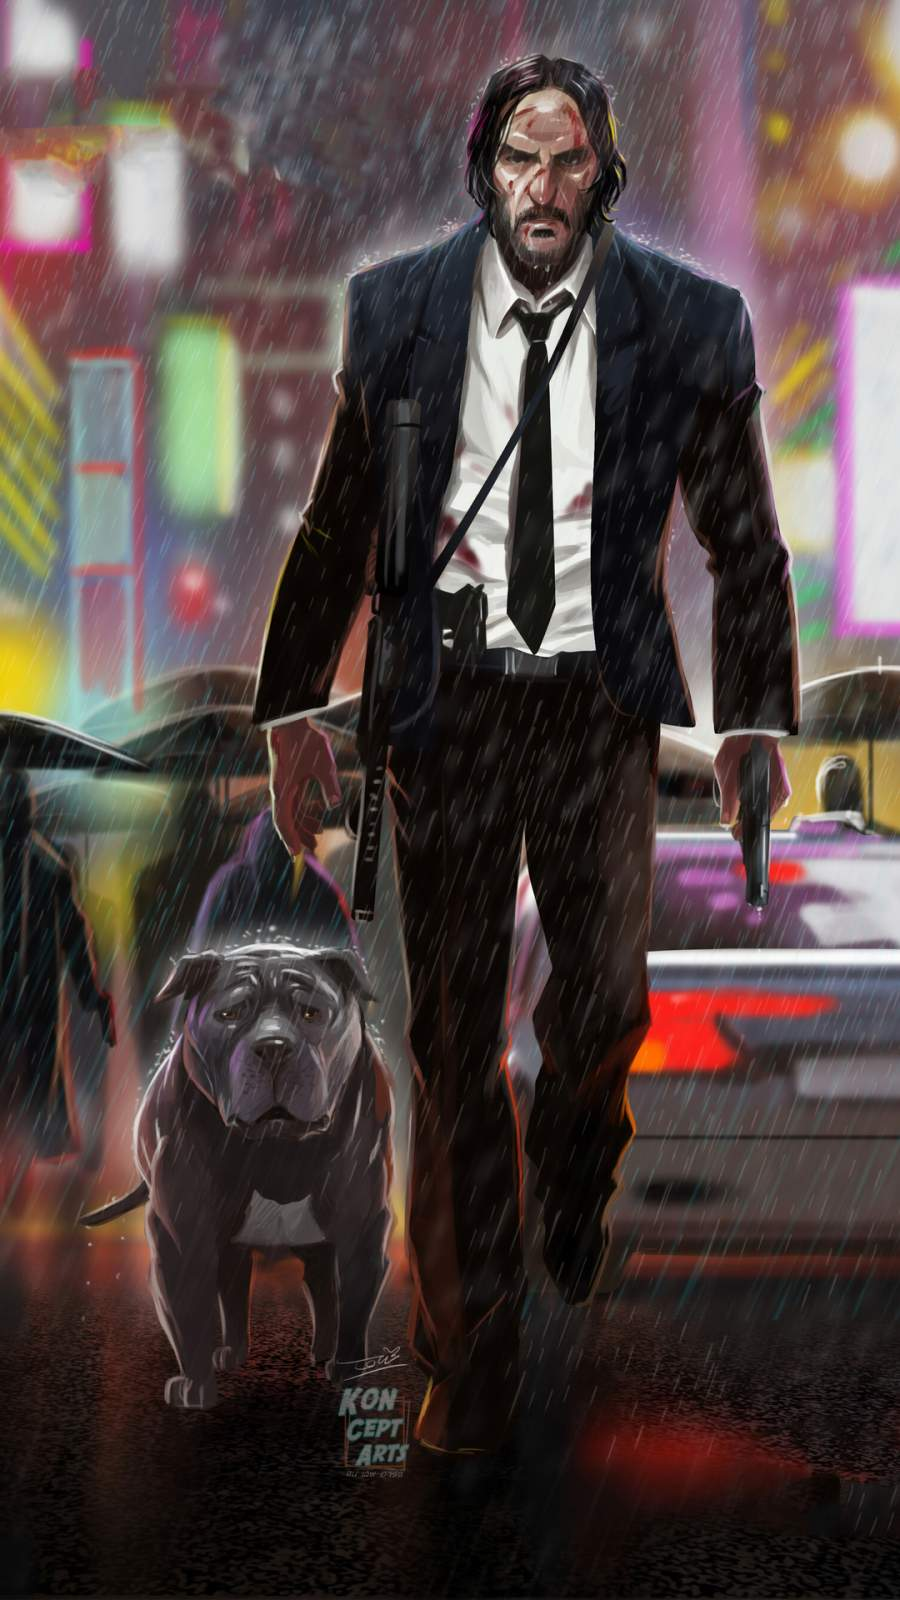 Happy Birthday Wallpaper With Quotes John Wick And Dog Iphone Wallpaper Iphone Wallpapers